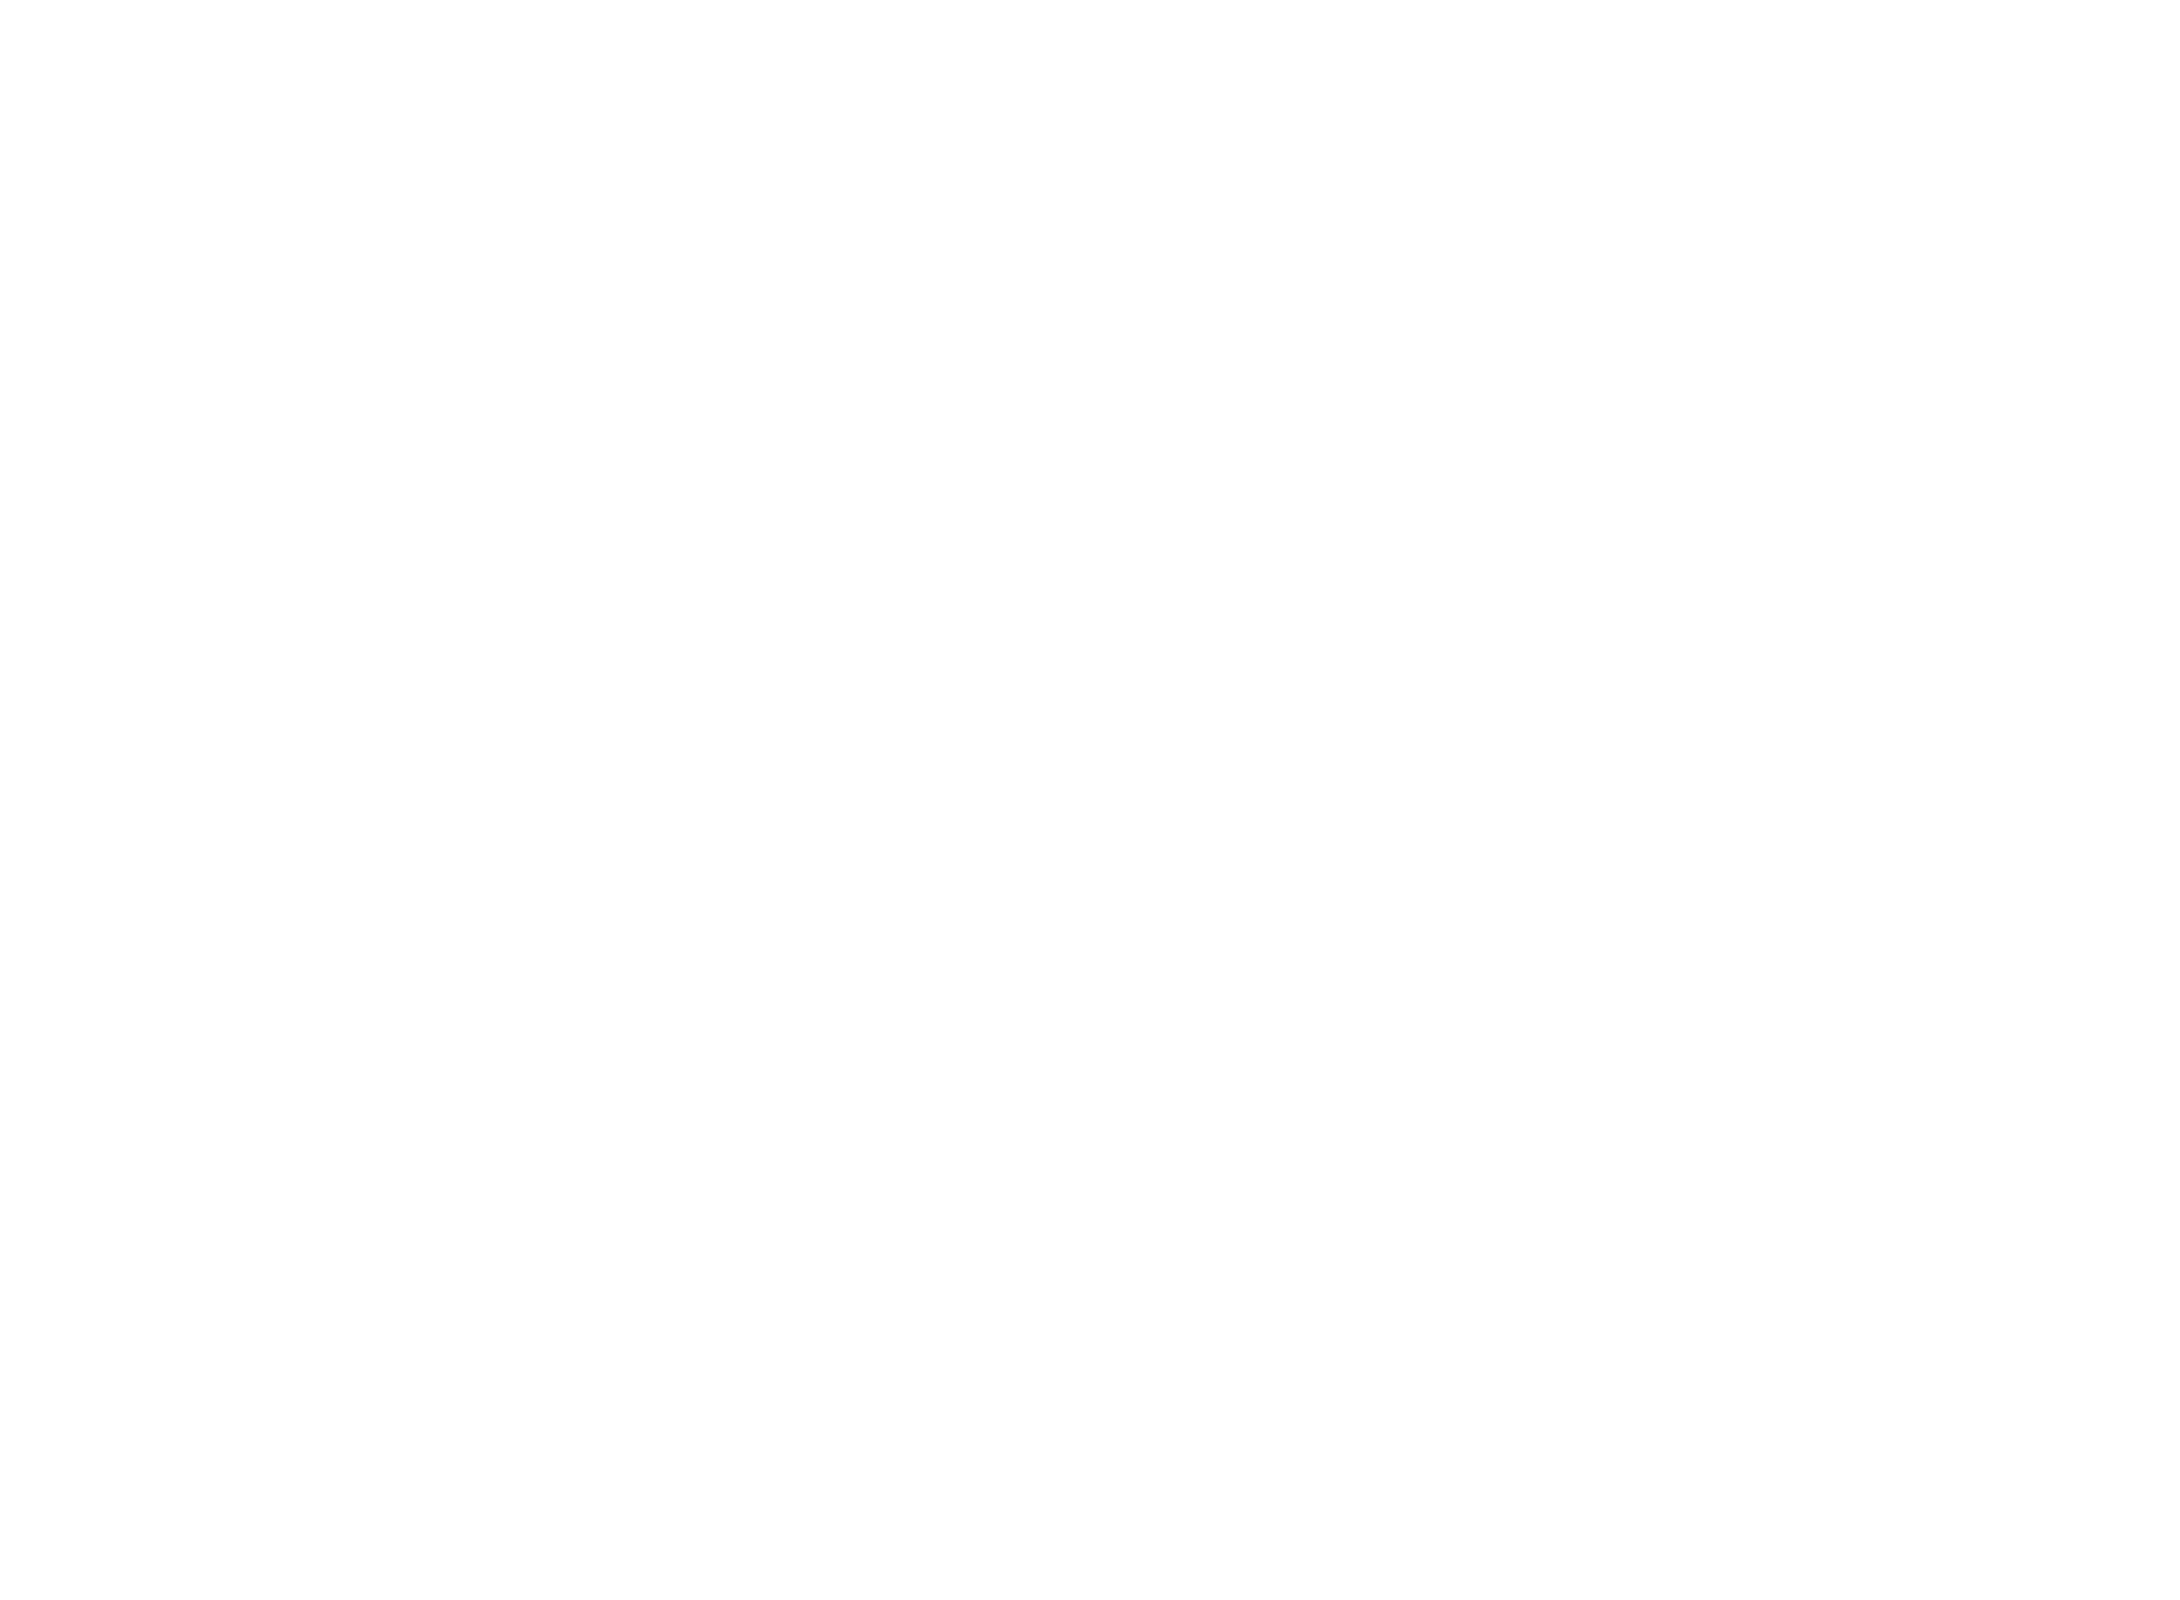 BLANK-LARGE-2180-1600.png